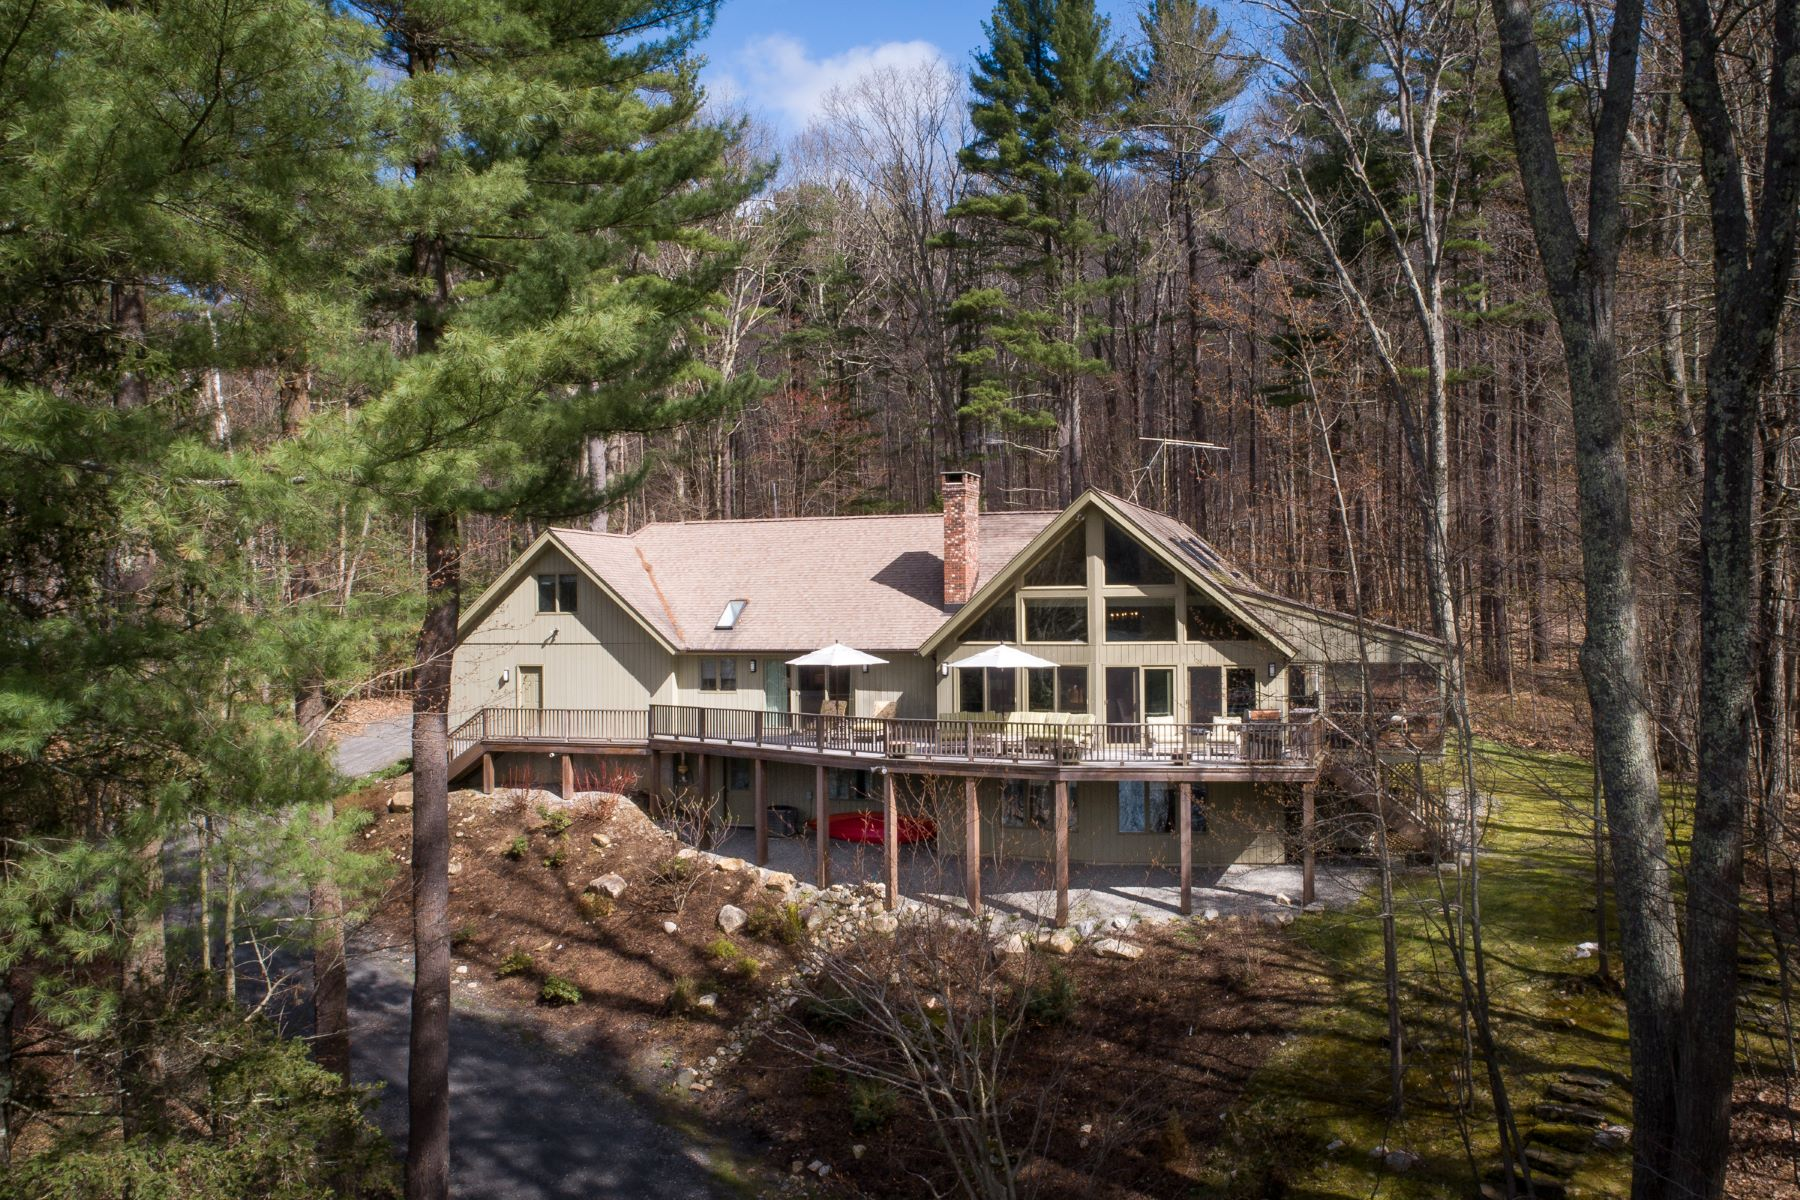 Single Family Home for Active at Spacious Private Retreat with Pristine Lake Views, 10 Minutes to Great Barringto 27 Stevens Lake Way Monterey, Massachusetts 01245 United States